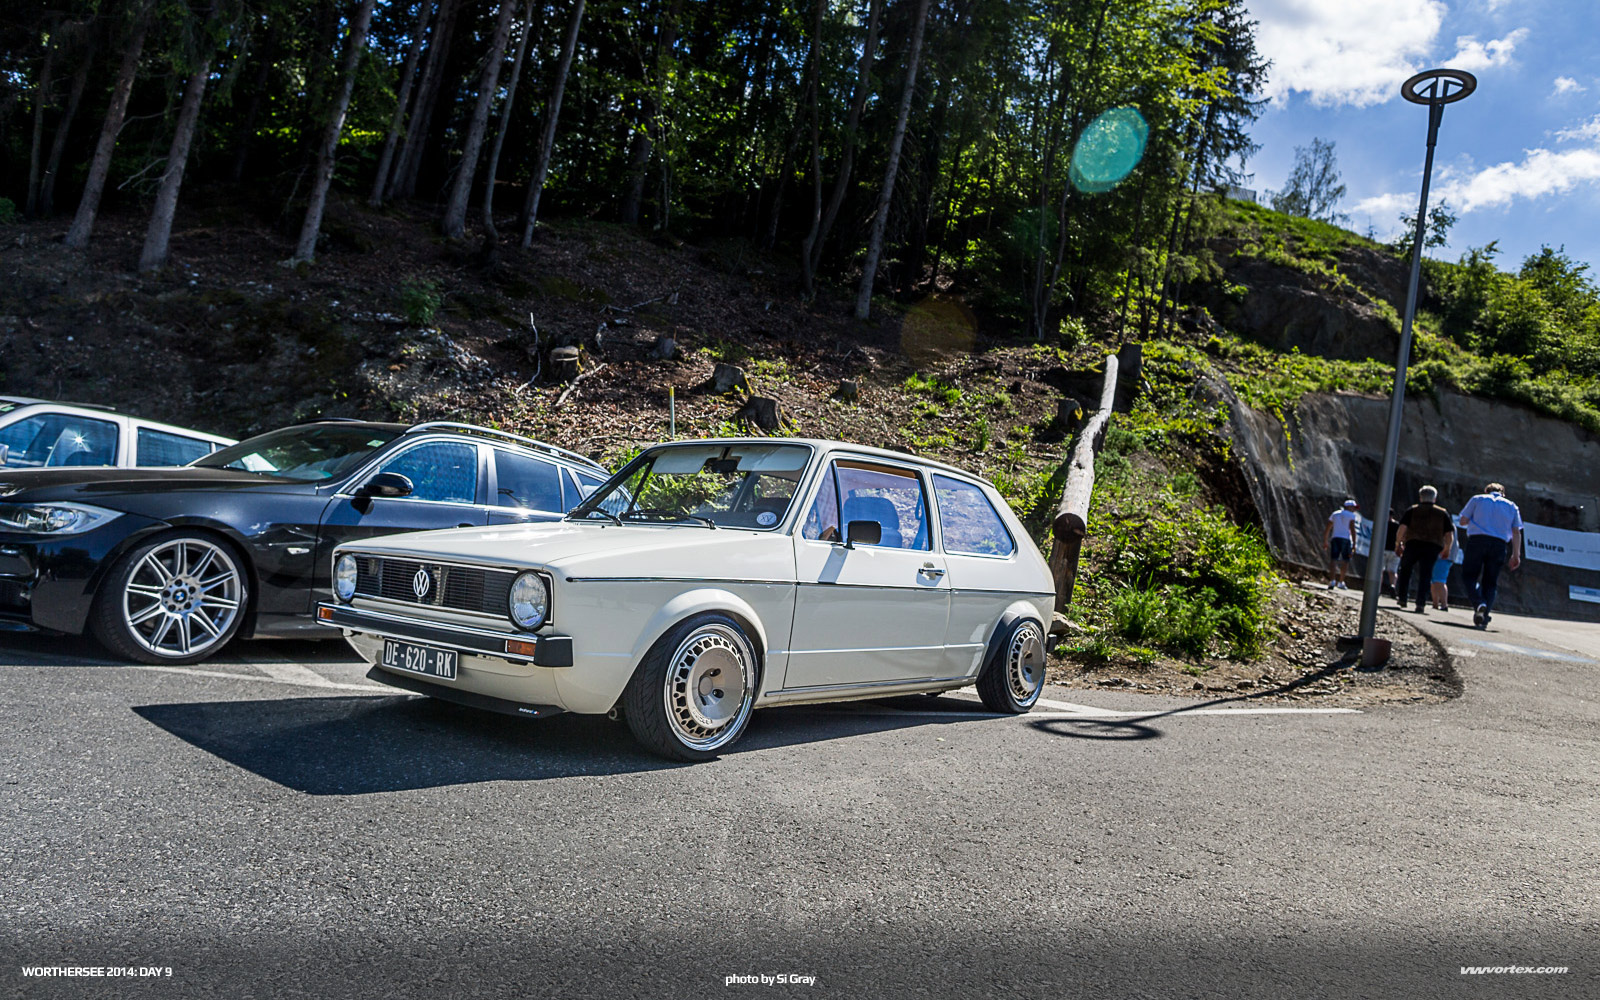 2014-Worthersee-Day-9-Si-Gray-408